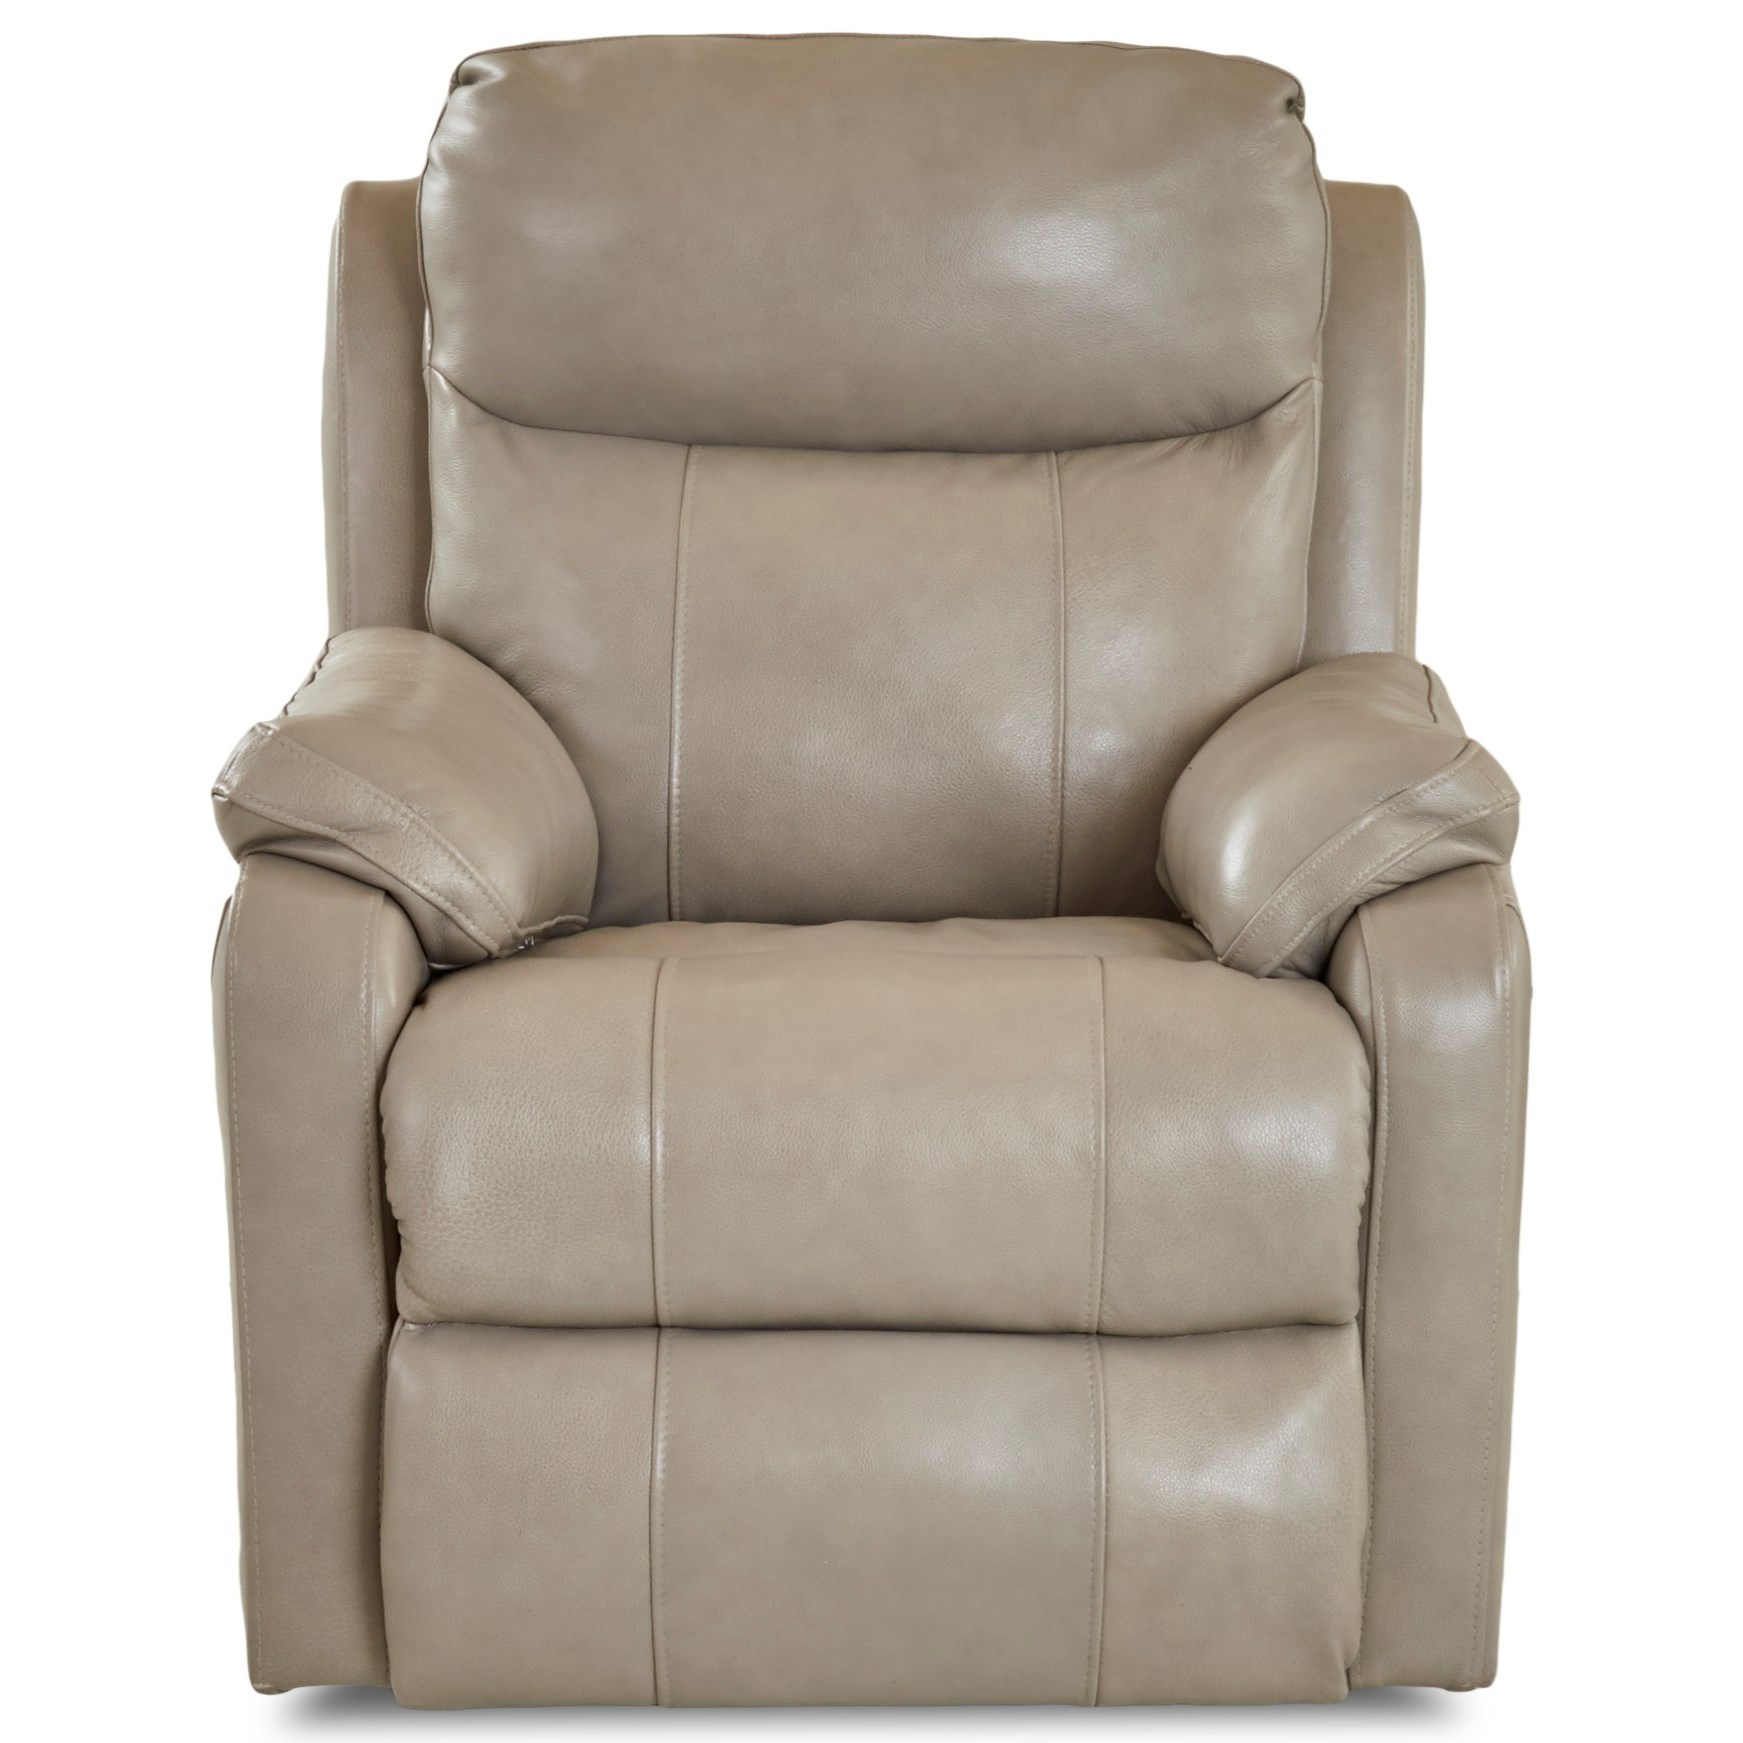 Casual Power Reclining Chair with USB Charging Port and Power Headrest & Lumbar